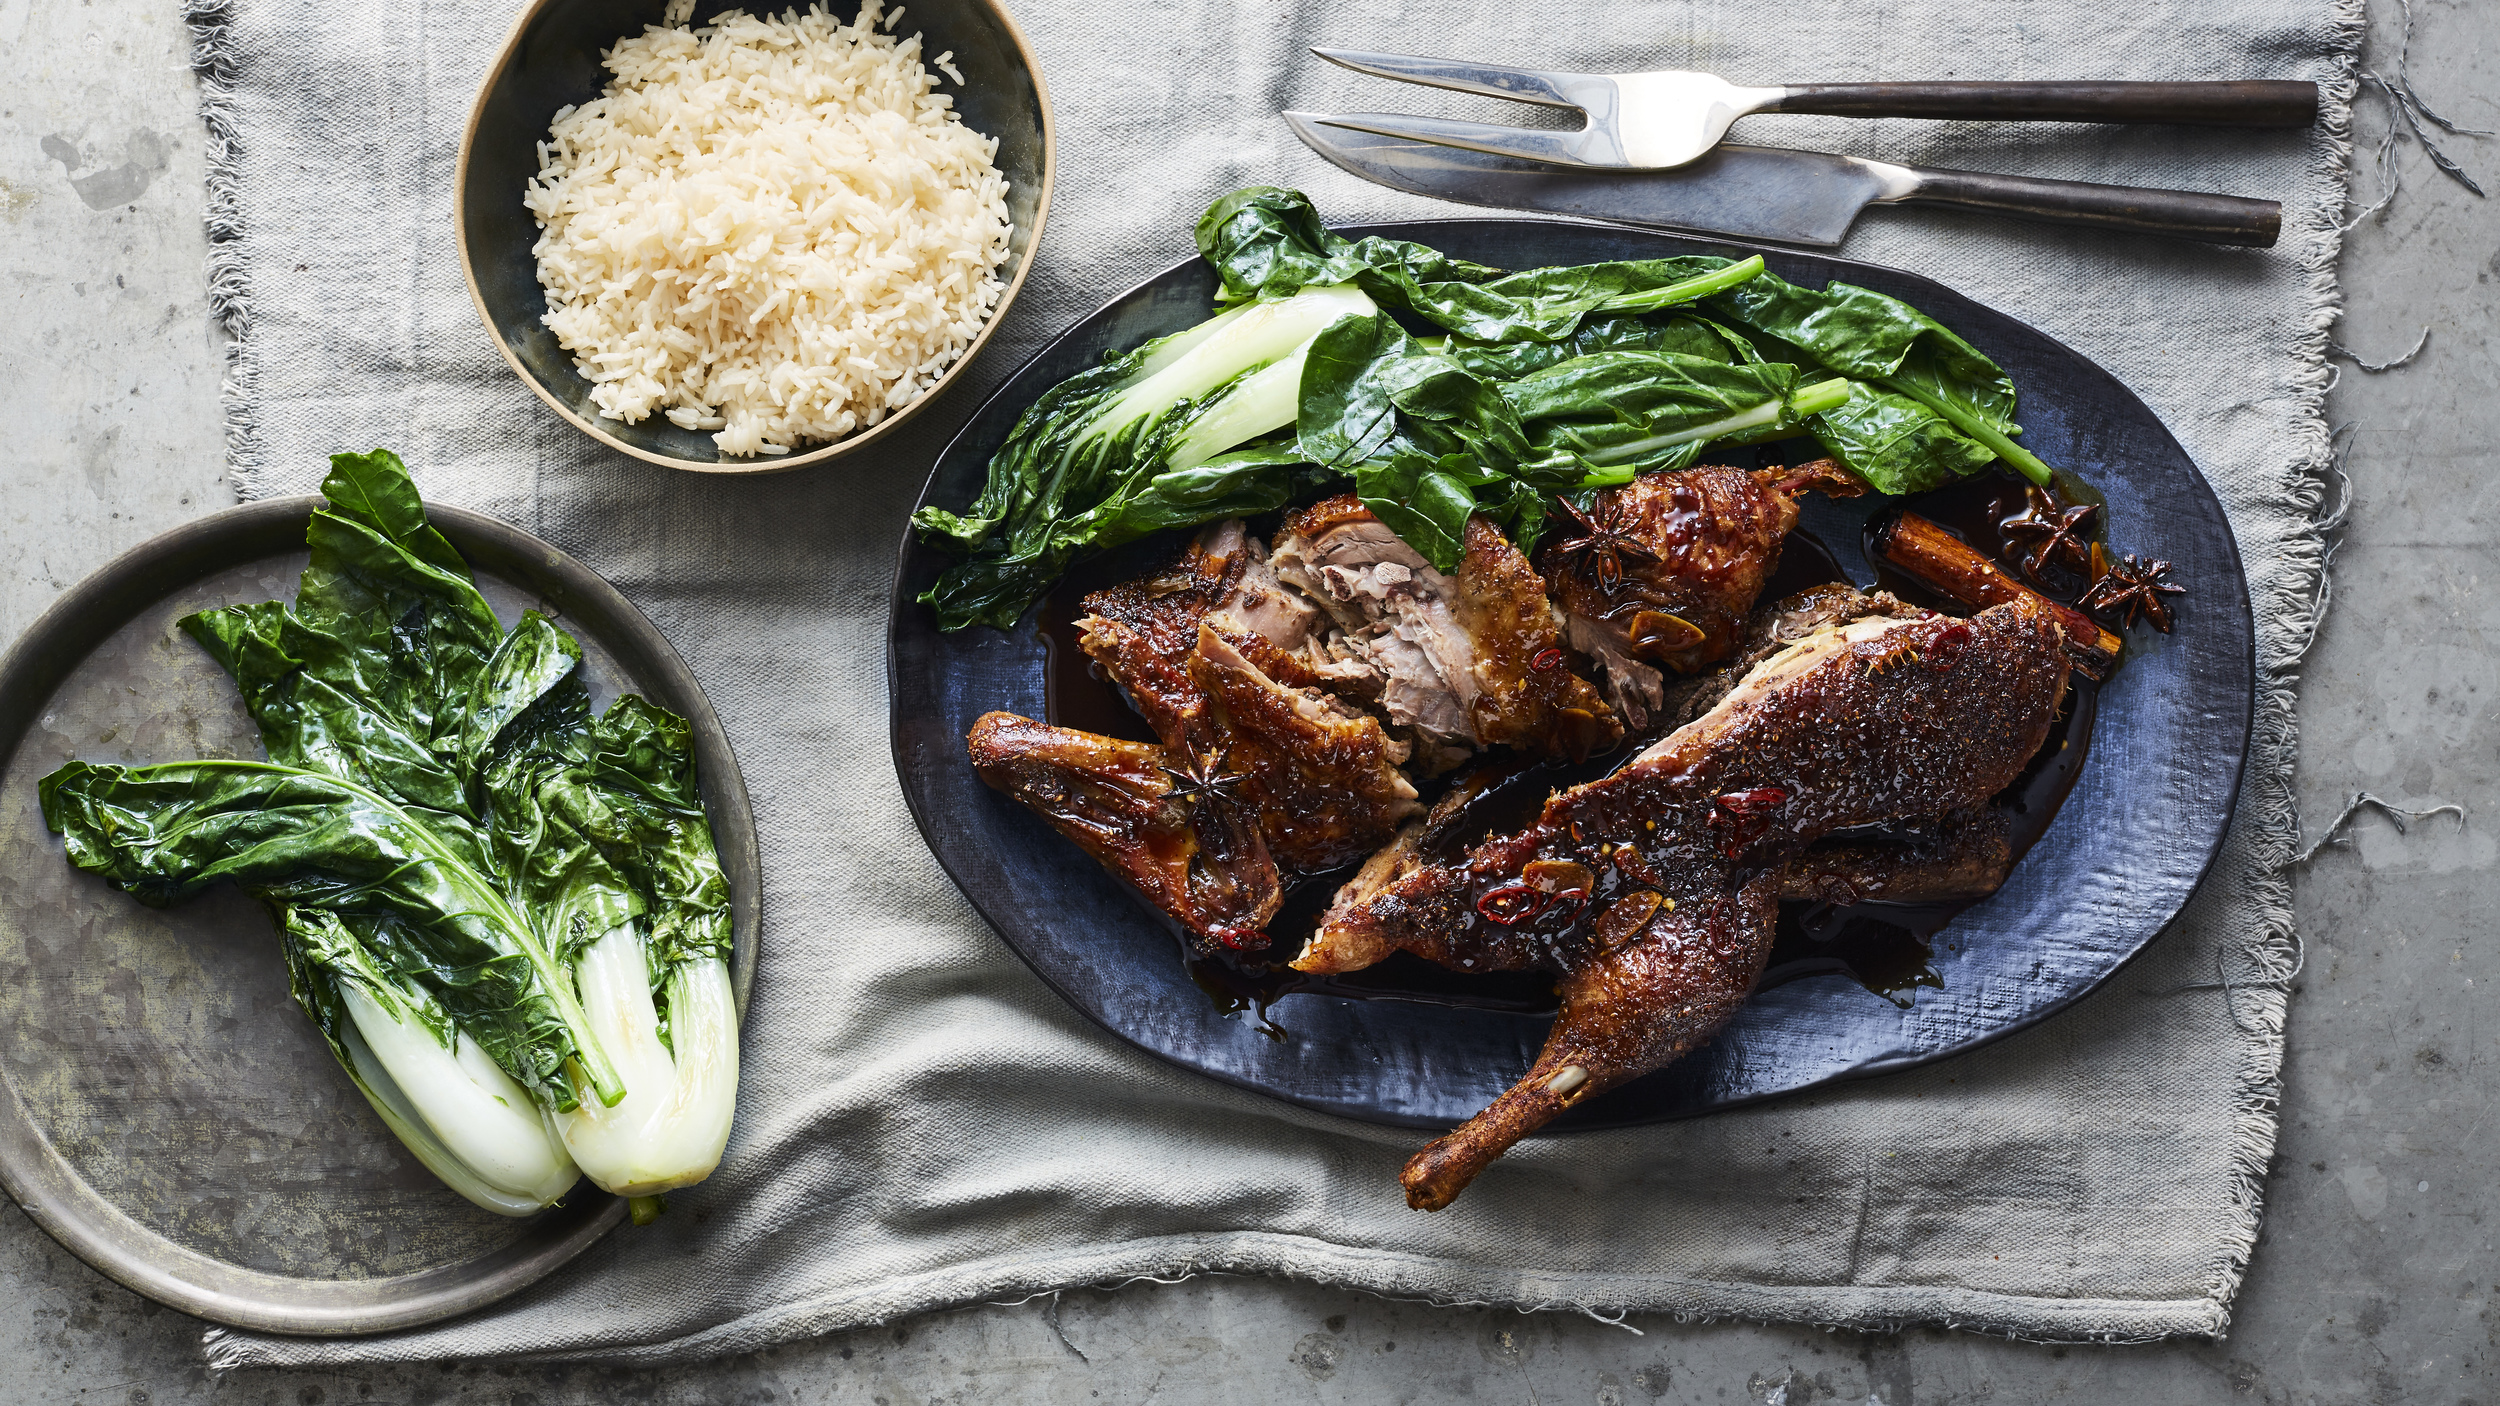 Spiced-honey roasted duck with rice and asian greens, Photography: Brett Stevens, Art Direction: Anne Marie Cummins, Food & Props Styling: Marcus Hay for SMH, Inc